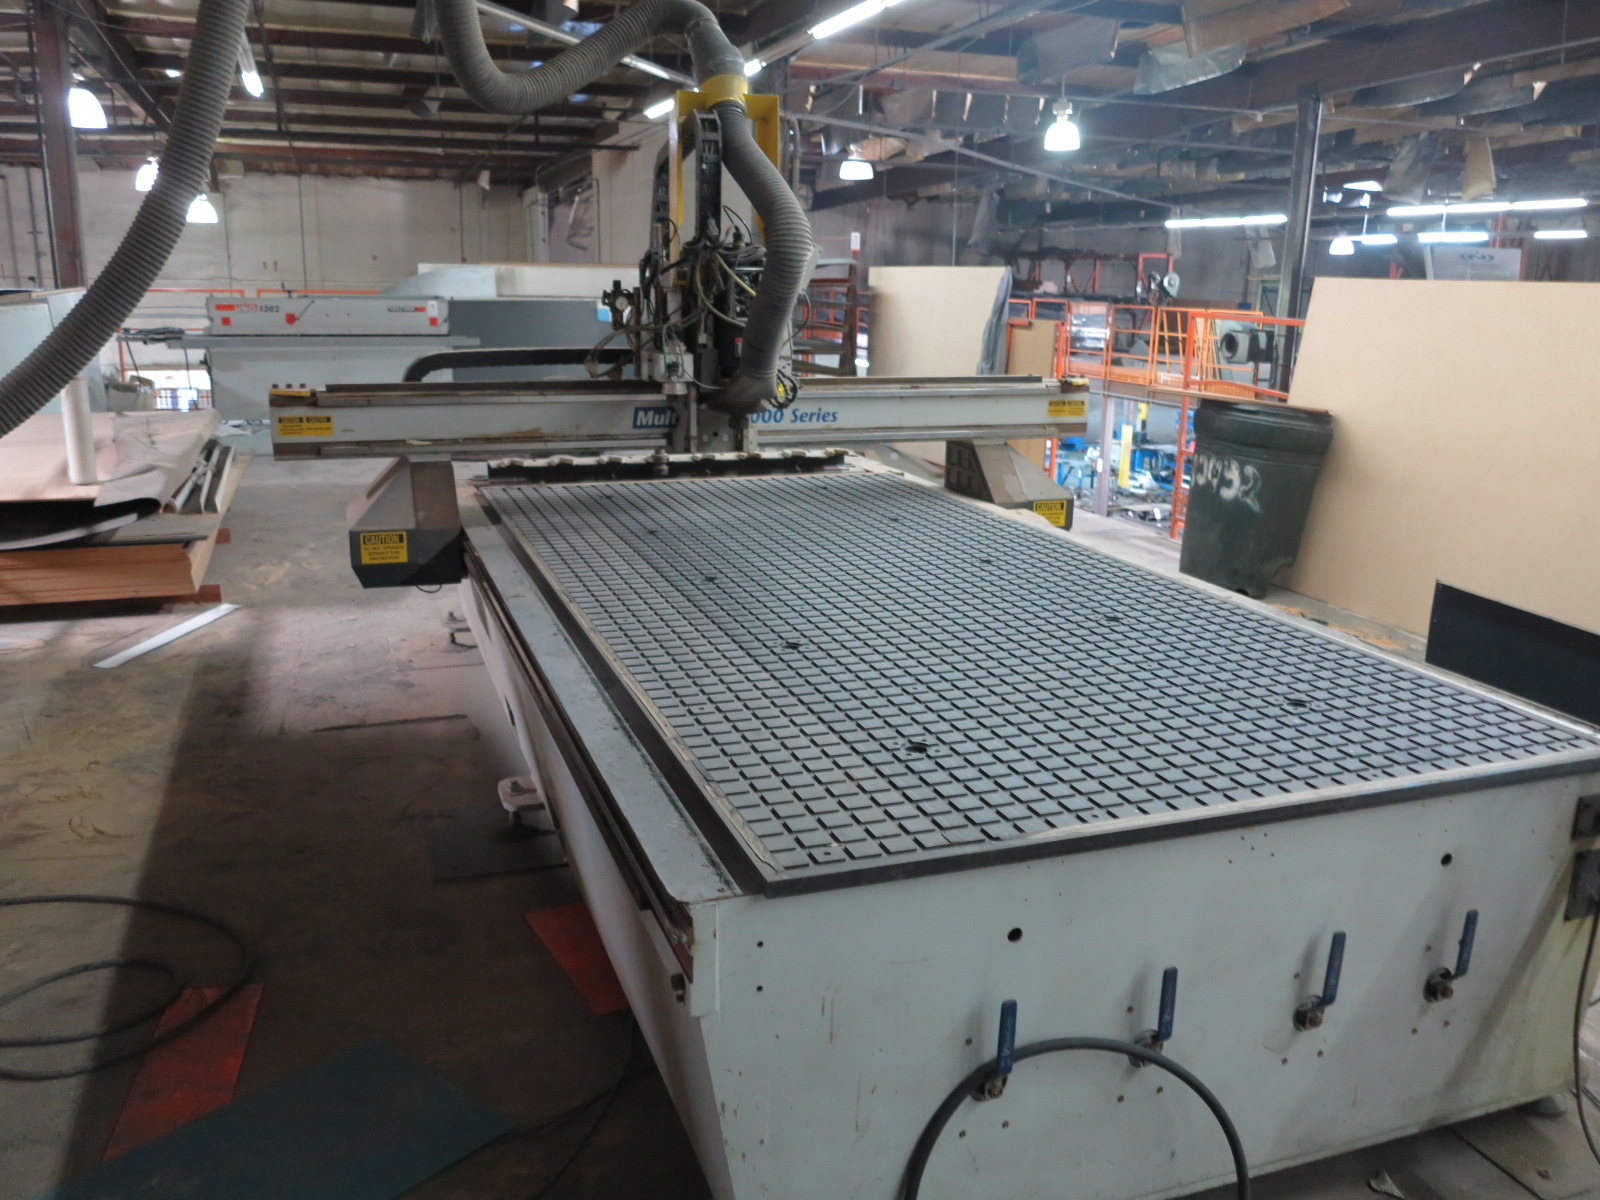 "2011 MULTICAM 3000 SERIES CNC ROUTER, 60""X122"", POSITION RACK TYPE TOOL CHANGER, S/N 3-204-R-PF08407 - Image 3 of 6"